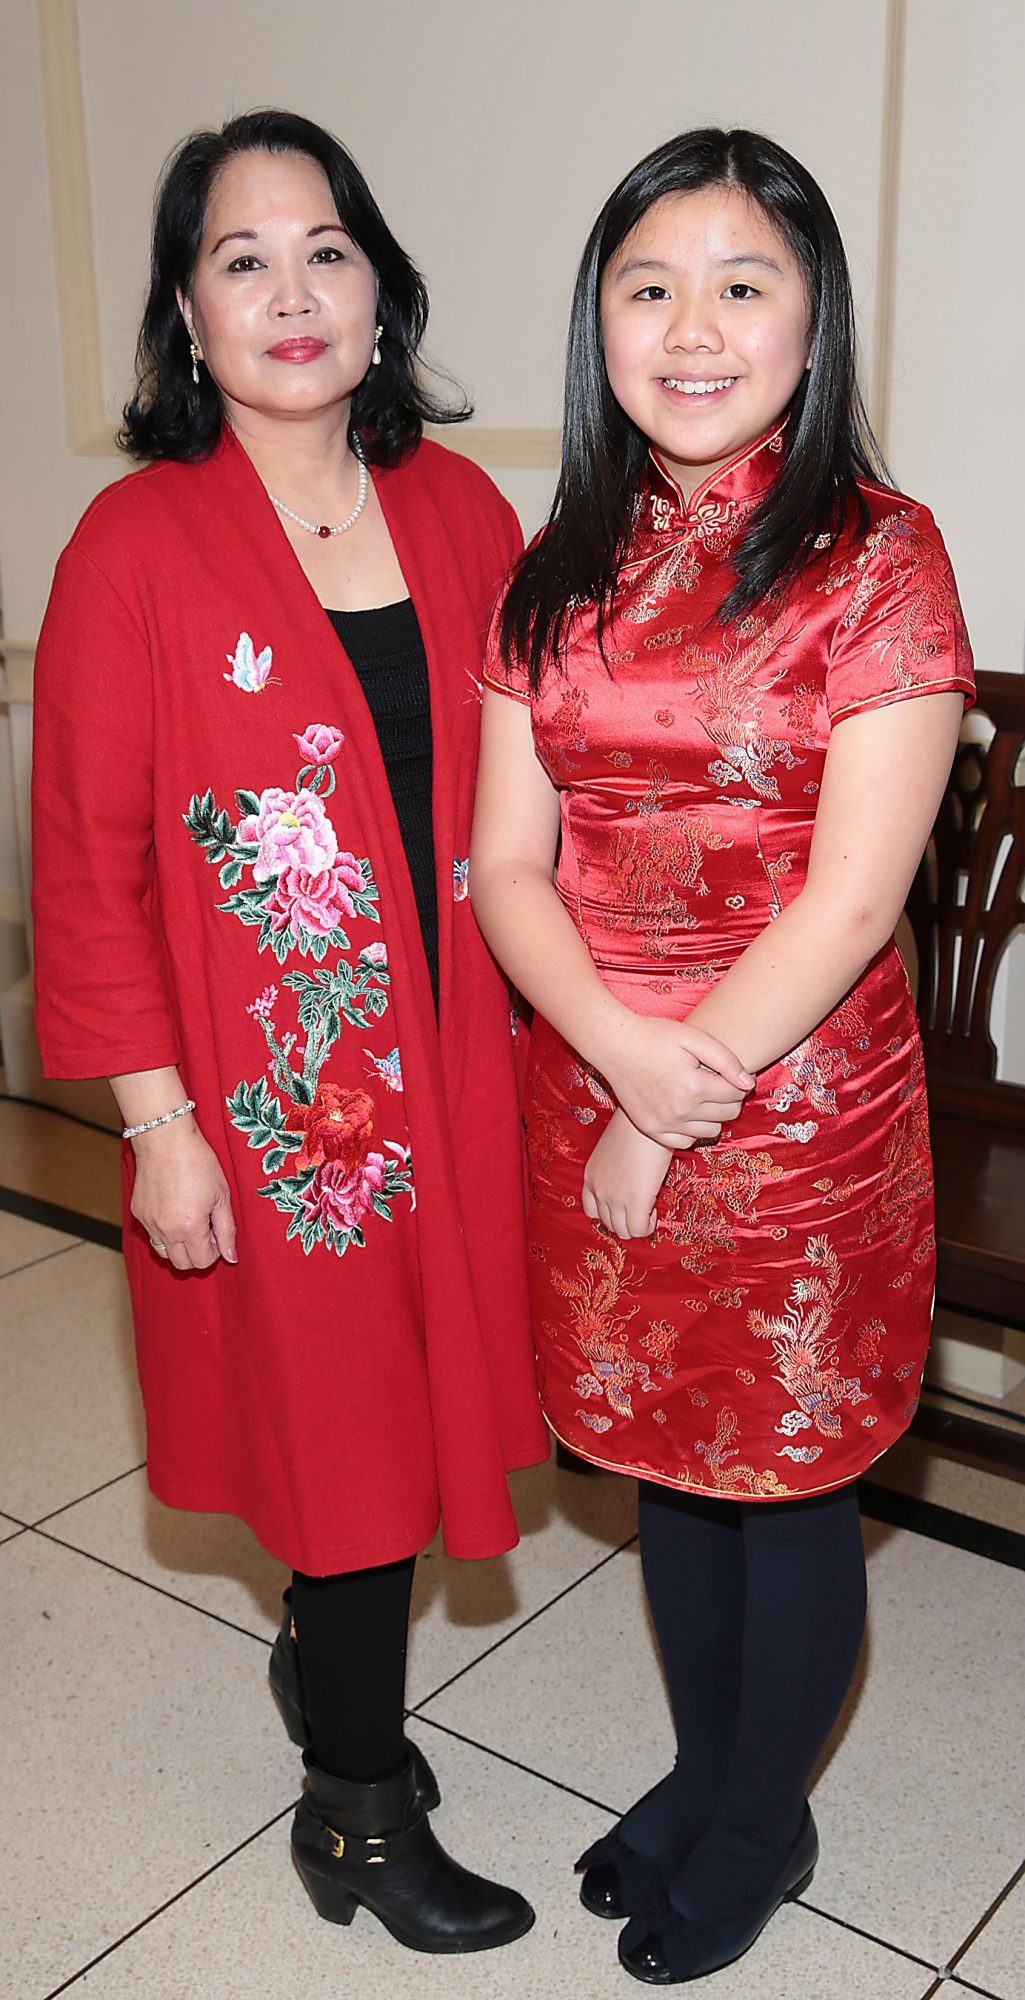 Mei Tsang and Josephine Choo pictured at the official opening event of Dublin Chinese New Year Festival 2019 at The Hugh Lane Gallery sponsored by Kildare Village. Dublin Chinese New Year Festival runs until 17th February for more see www.dublinchinesenewyear.com   Pic Brian McEvoy